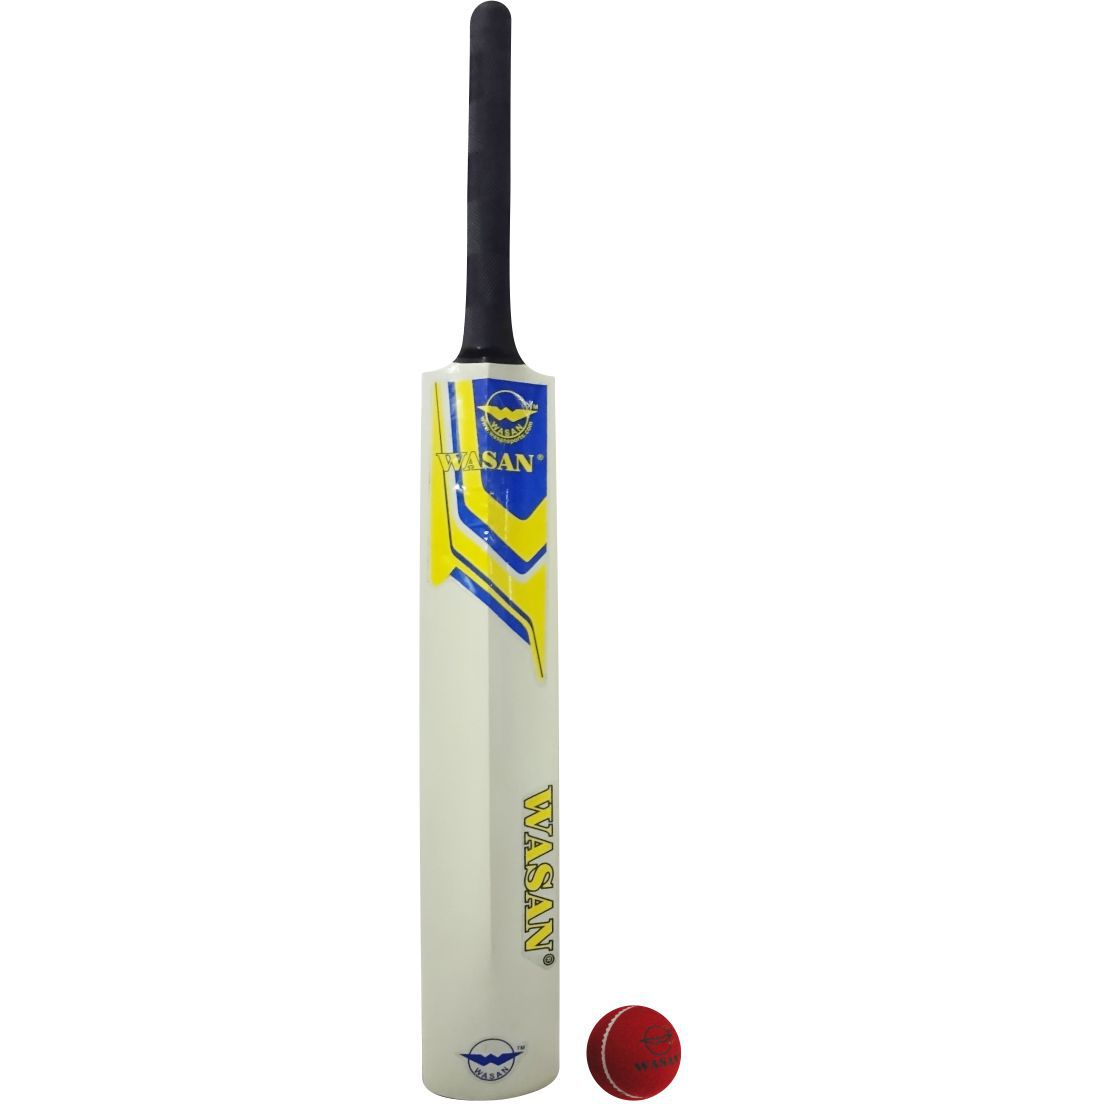 8e6c5251446 Wasan Bat And Ball Size 6. Cricket Kit  Buy Online at Best Price on Snapdeal